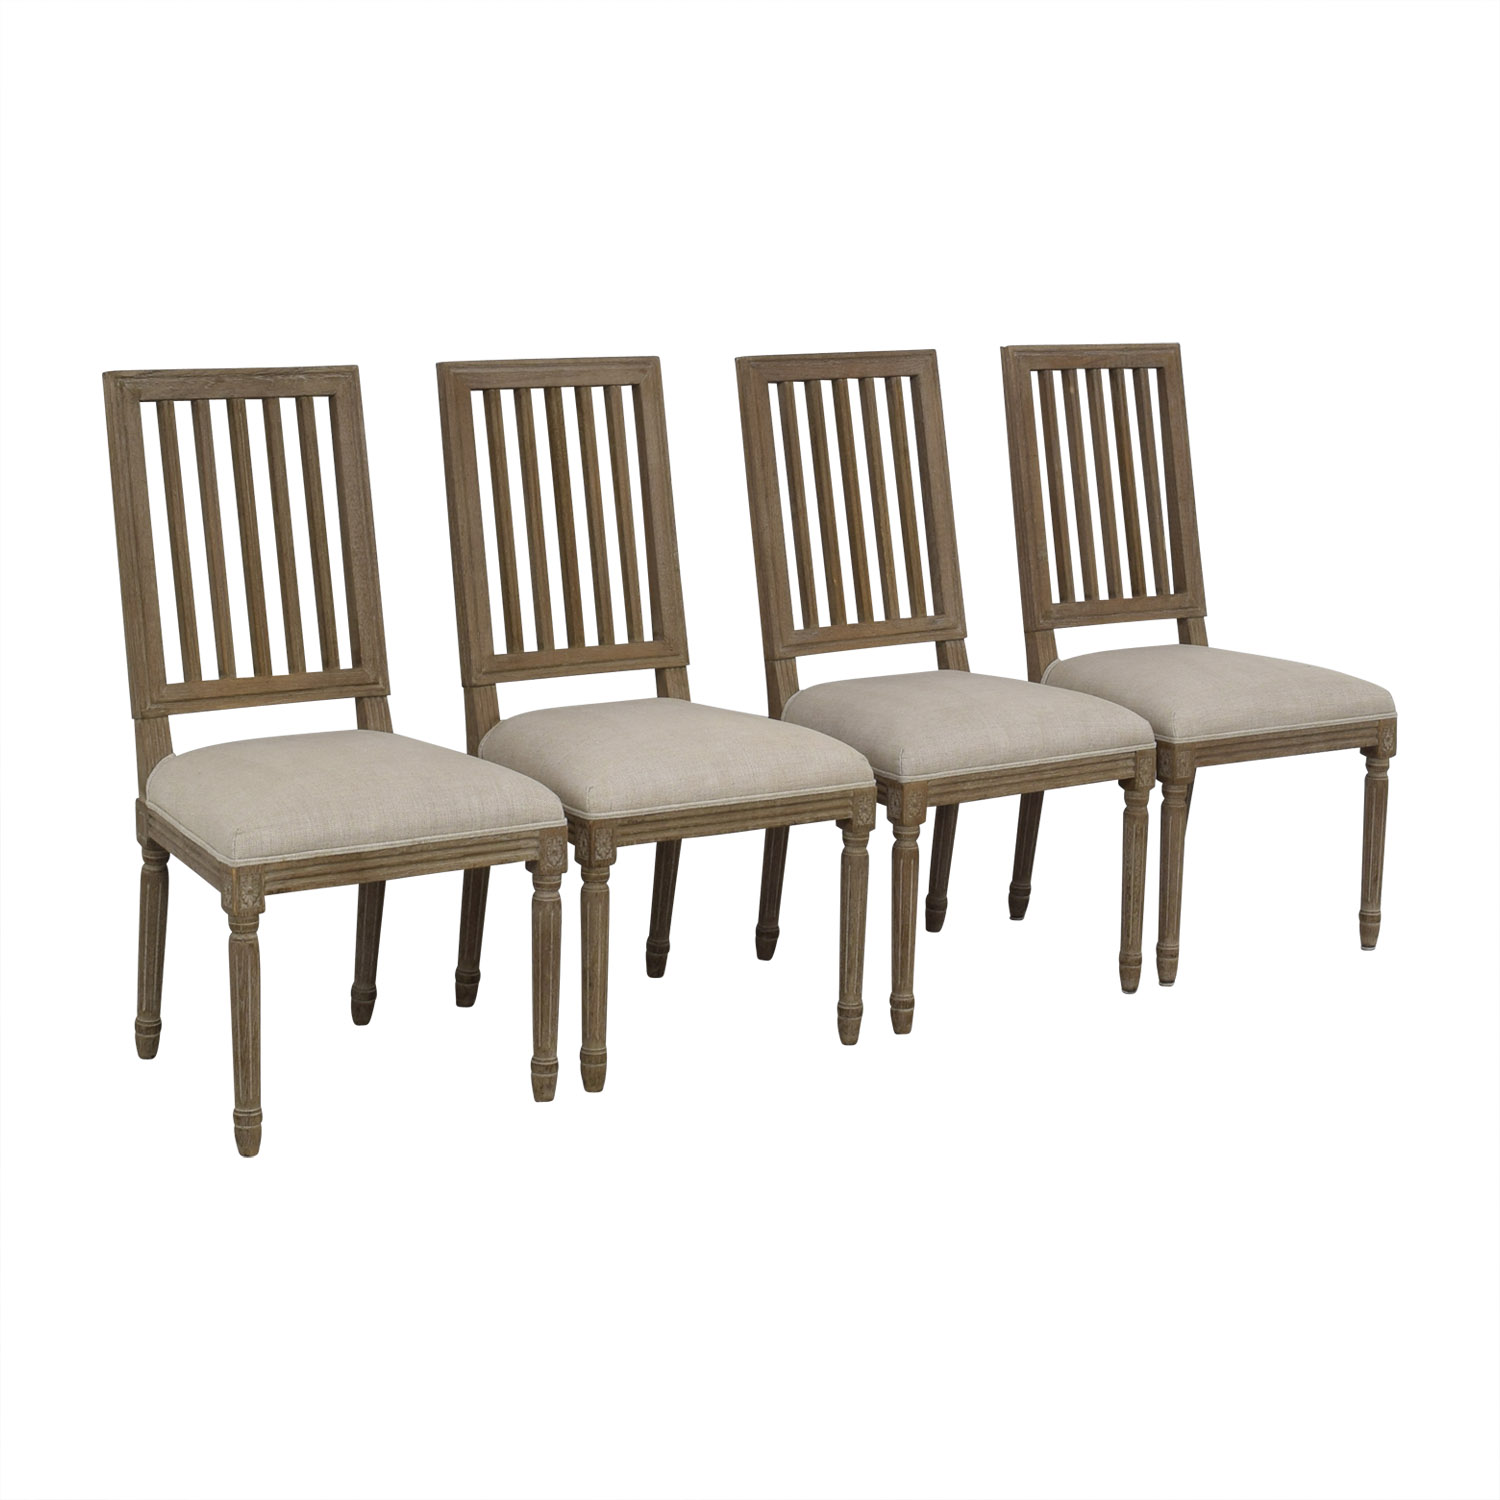 Restoration Hardware Restoration Hardware Spindle Back Dining Chairs GRAY